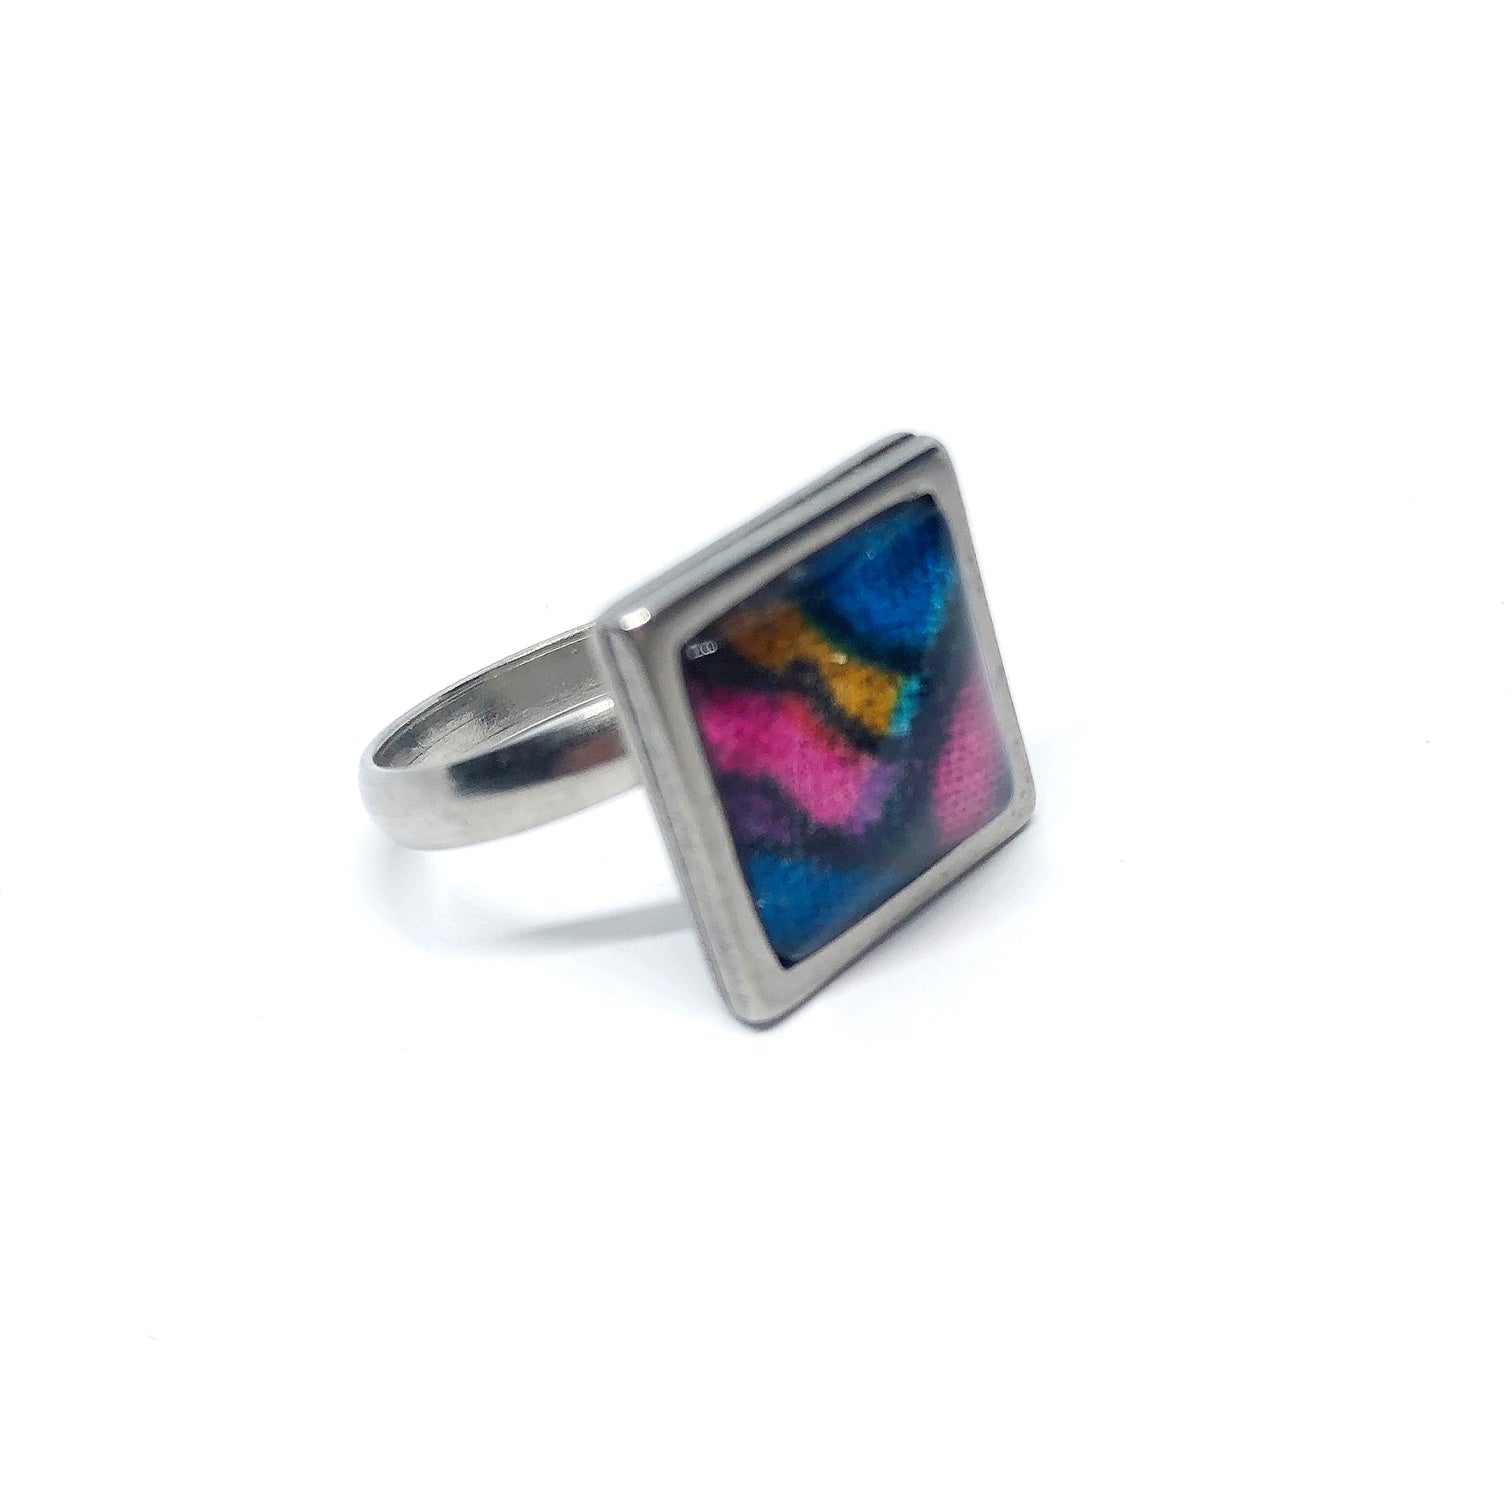 12mm Rainbow adjustable ring